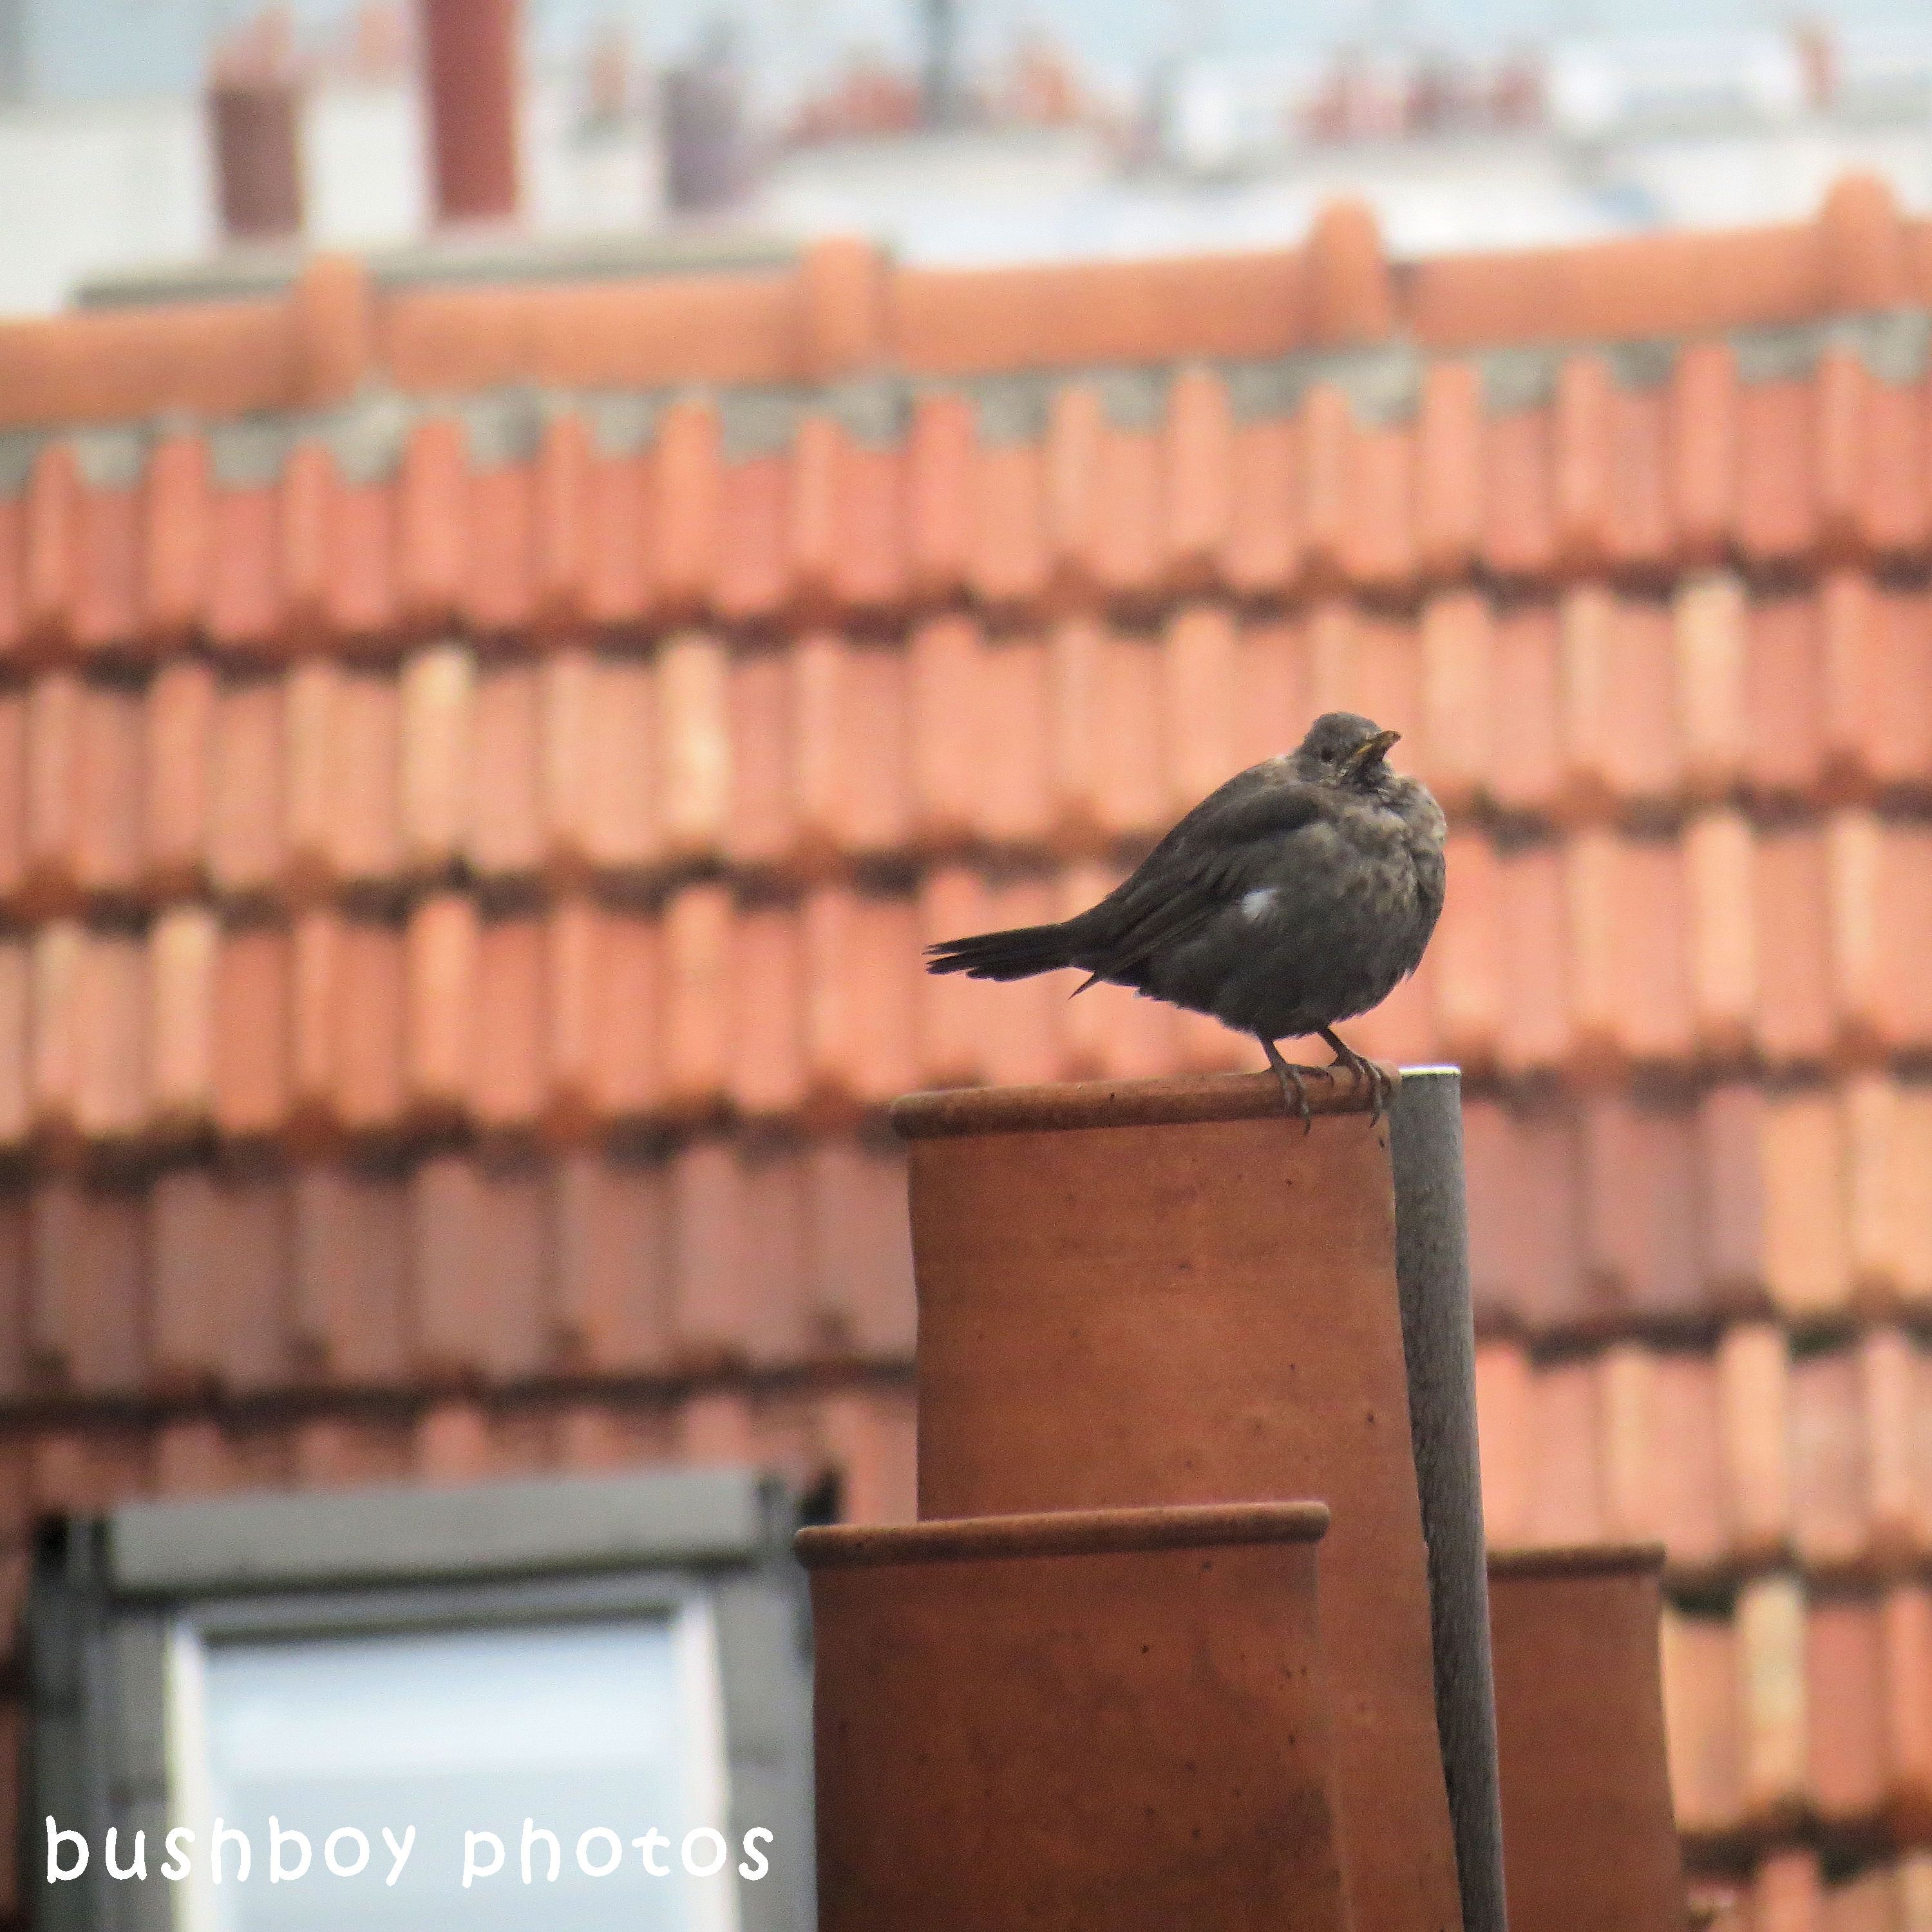 180616_square rooves_paris_bird